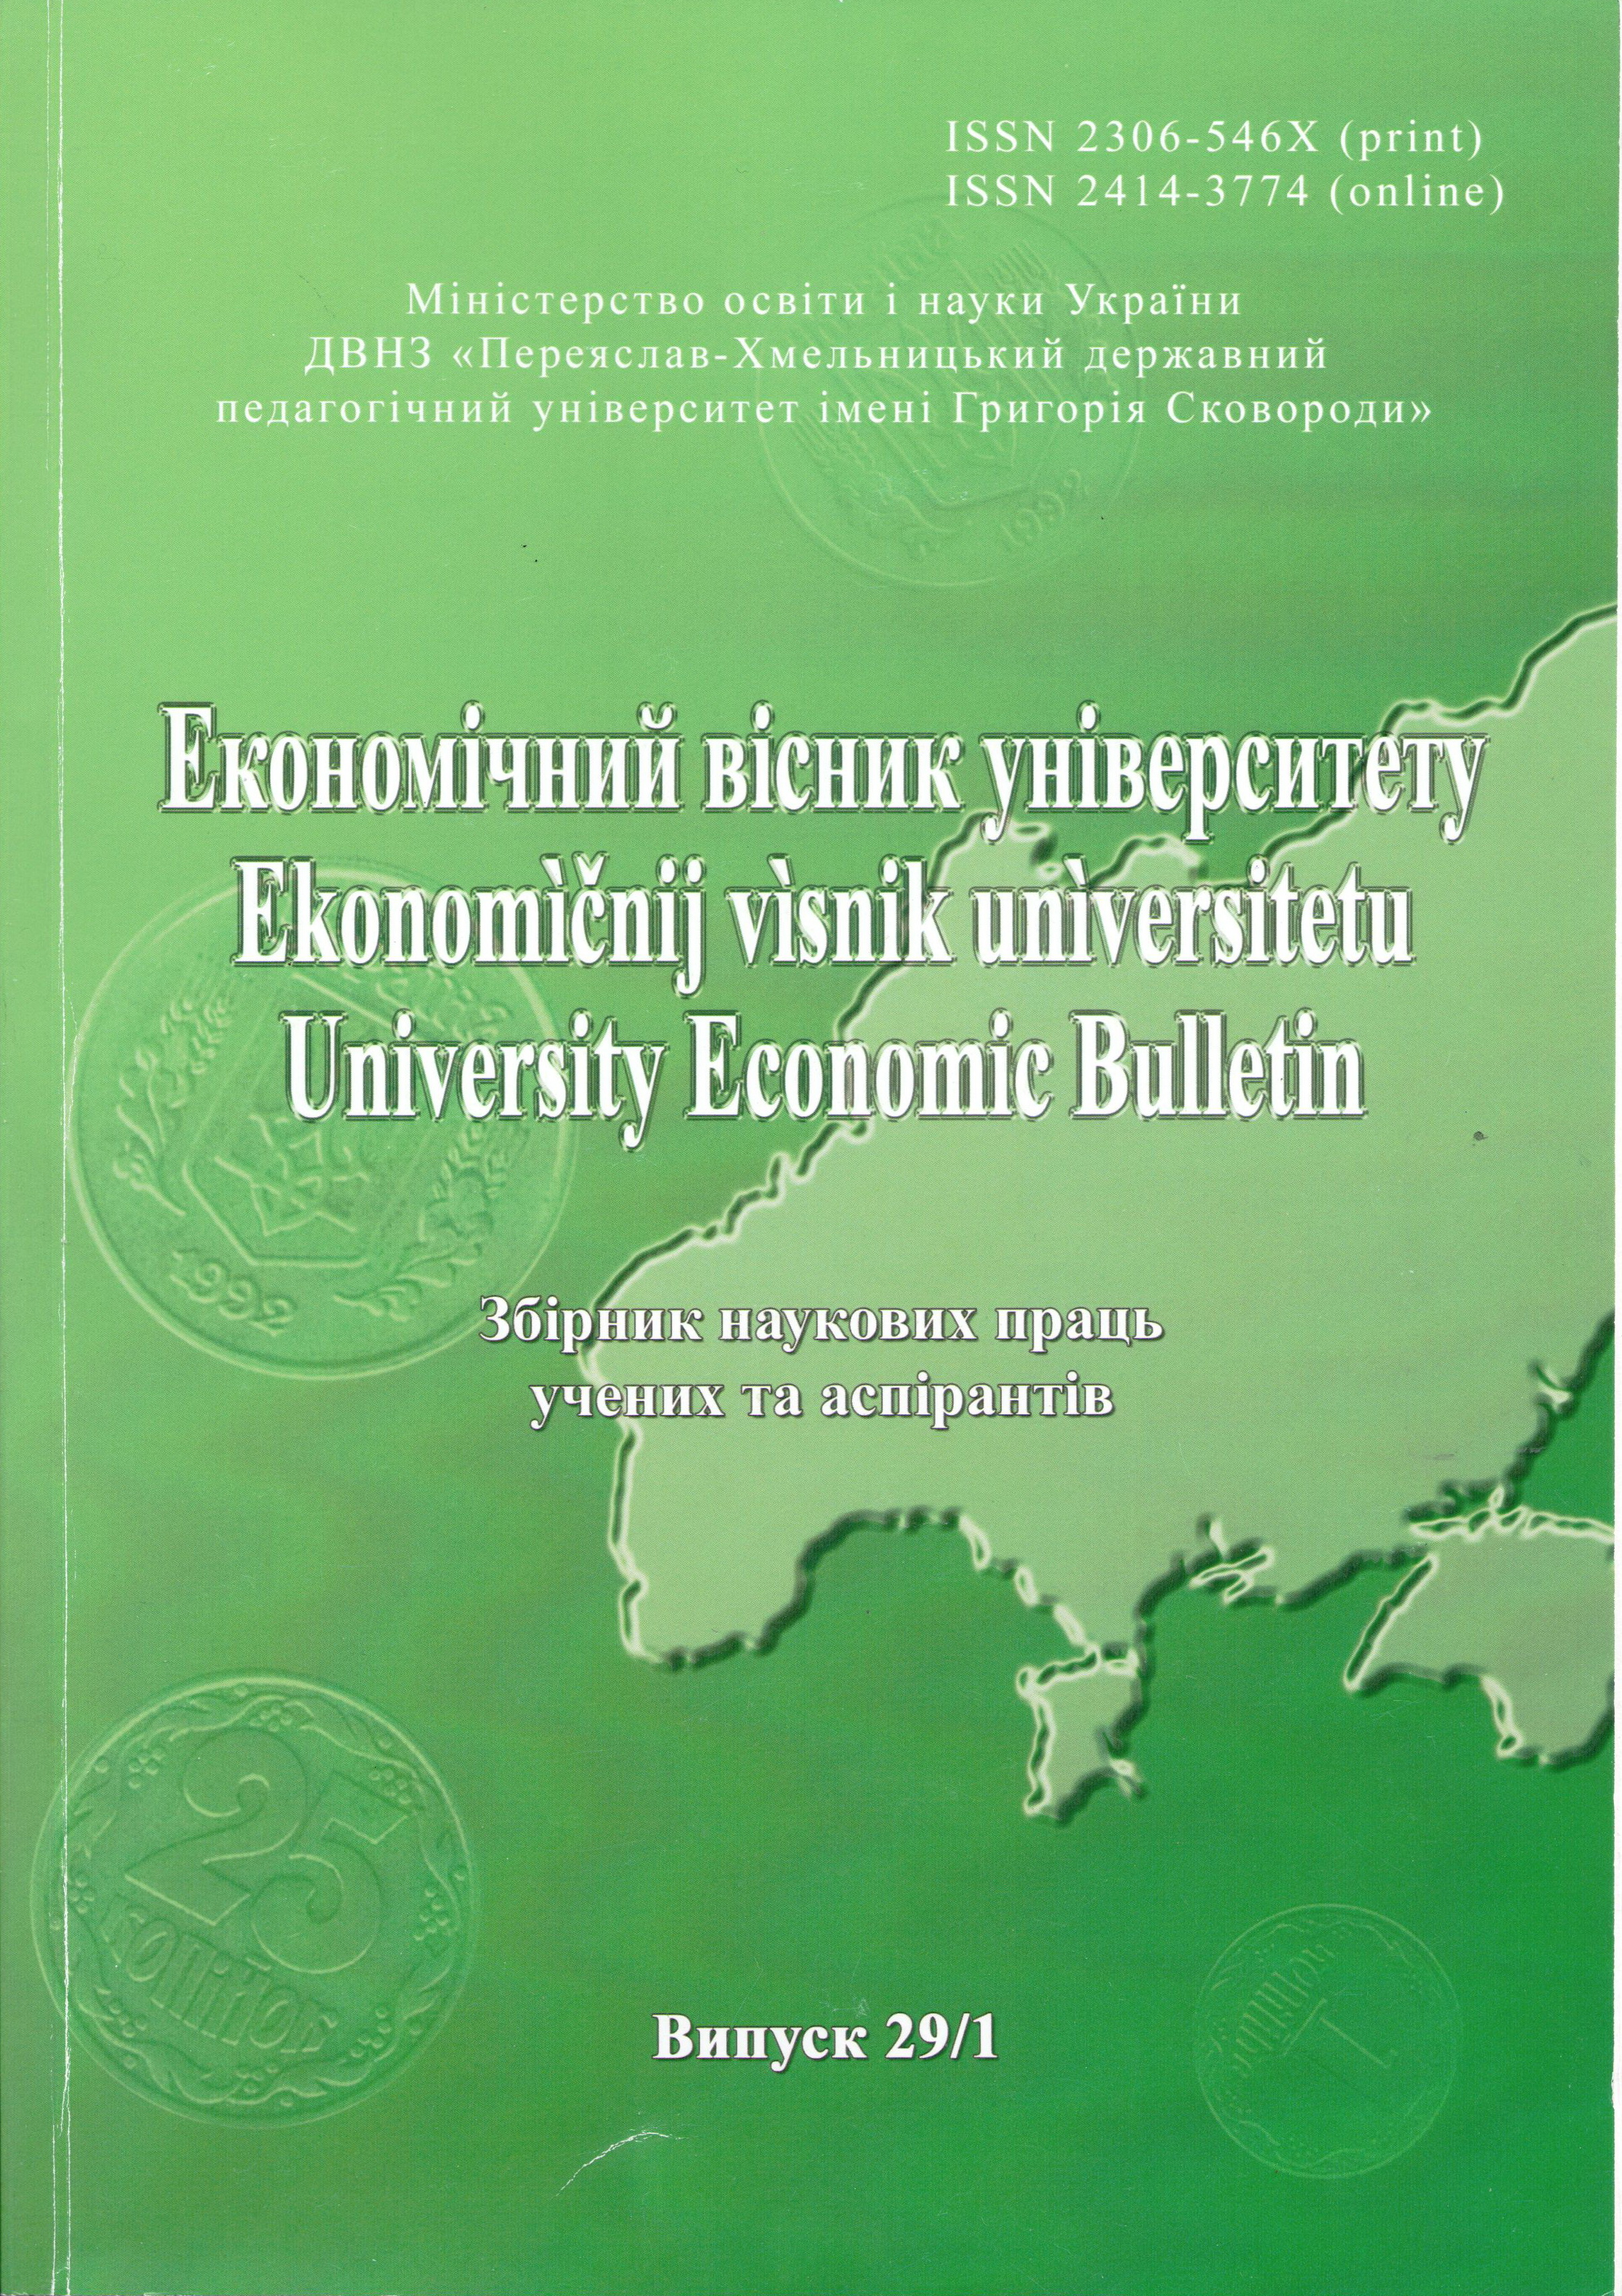 Trends of agricultural development production in Kyiv region Cover Image